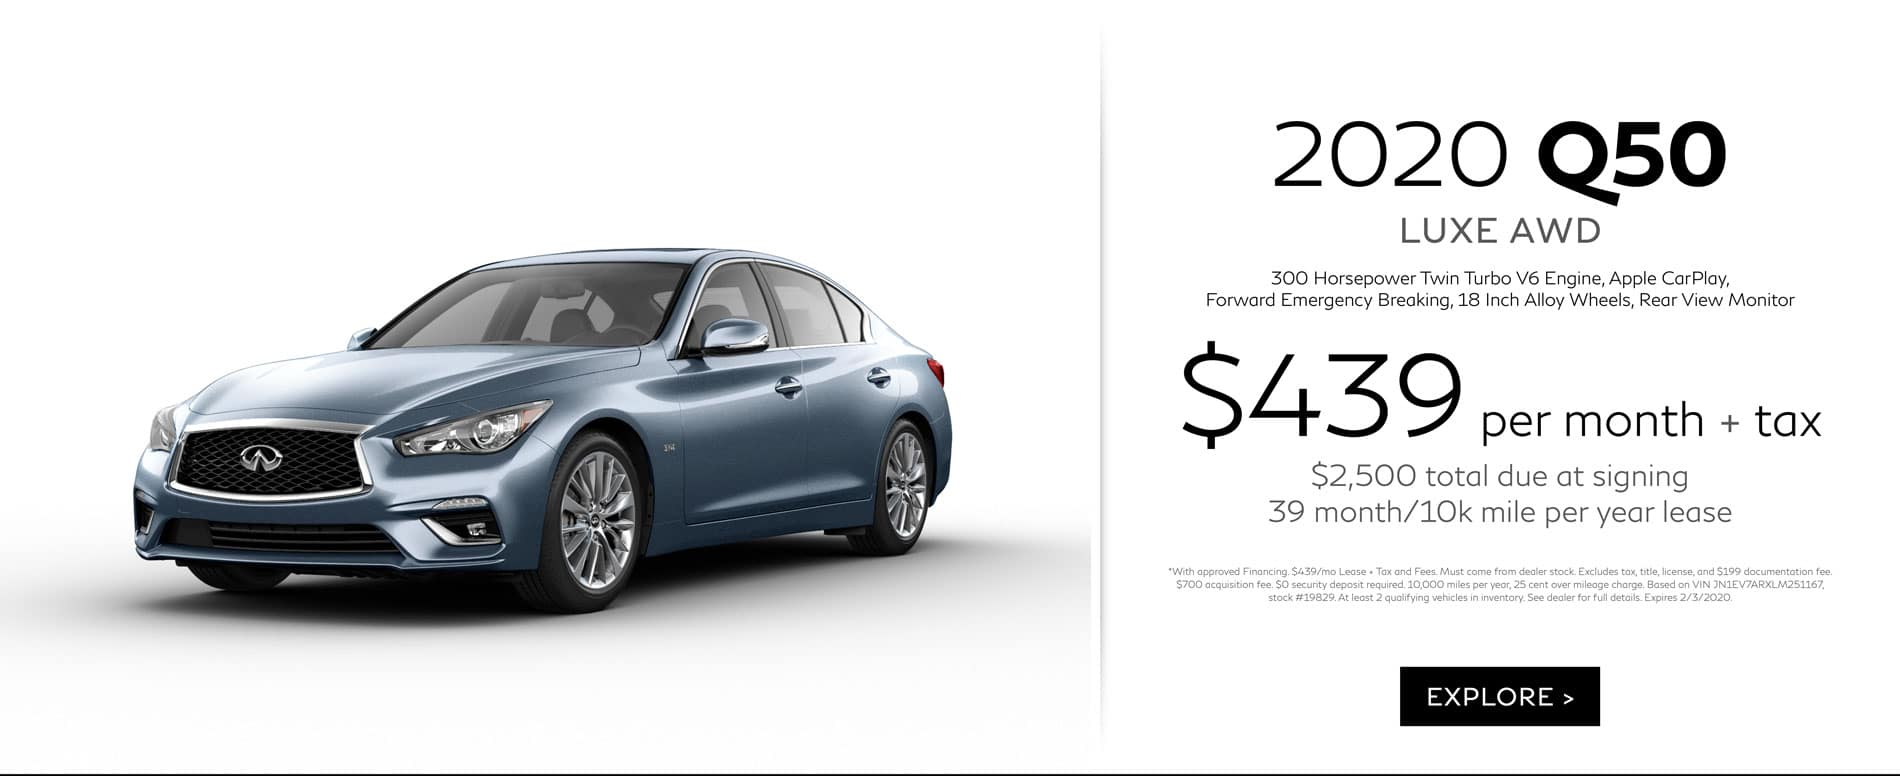 DR INFINITI January Offer | Lease for $439/mo